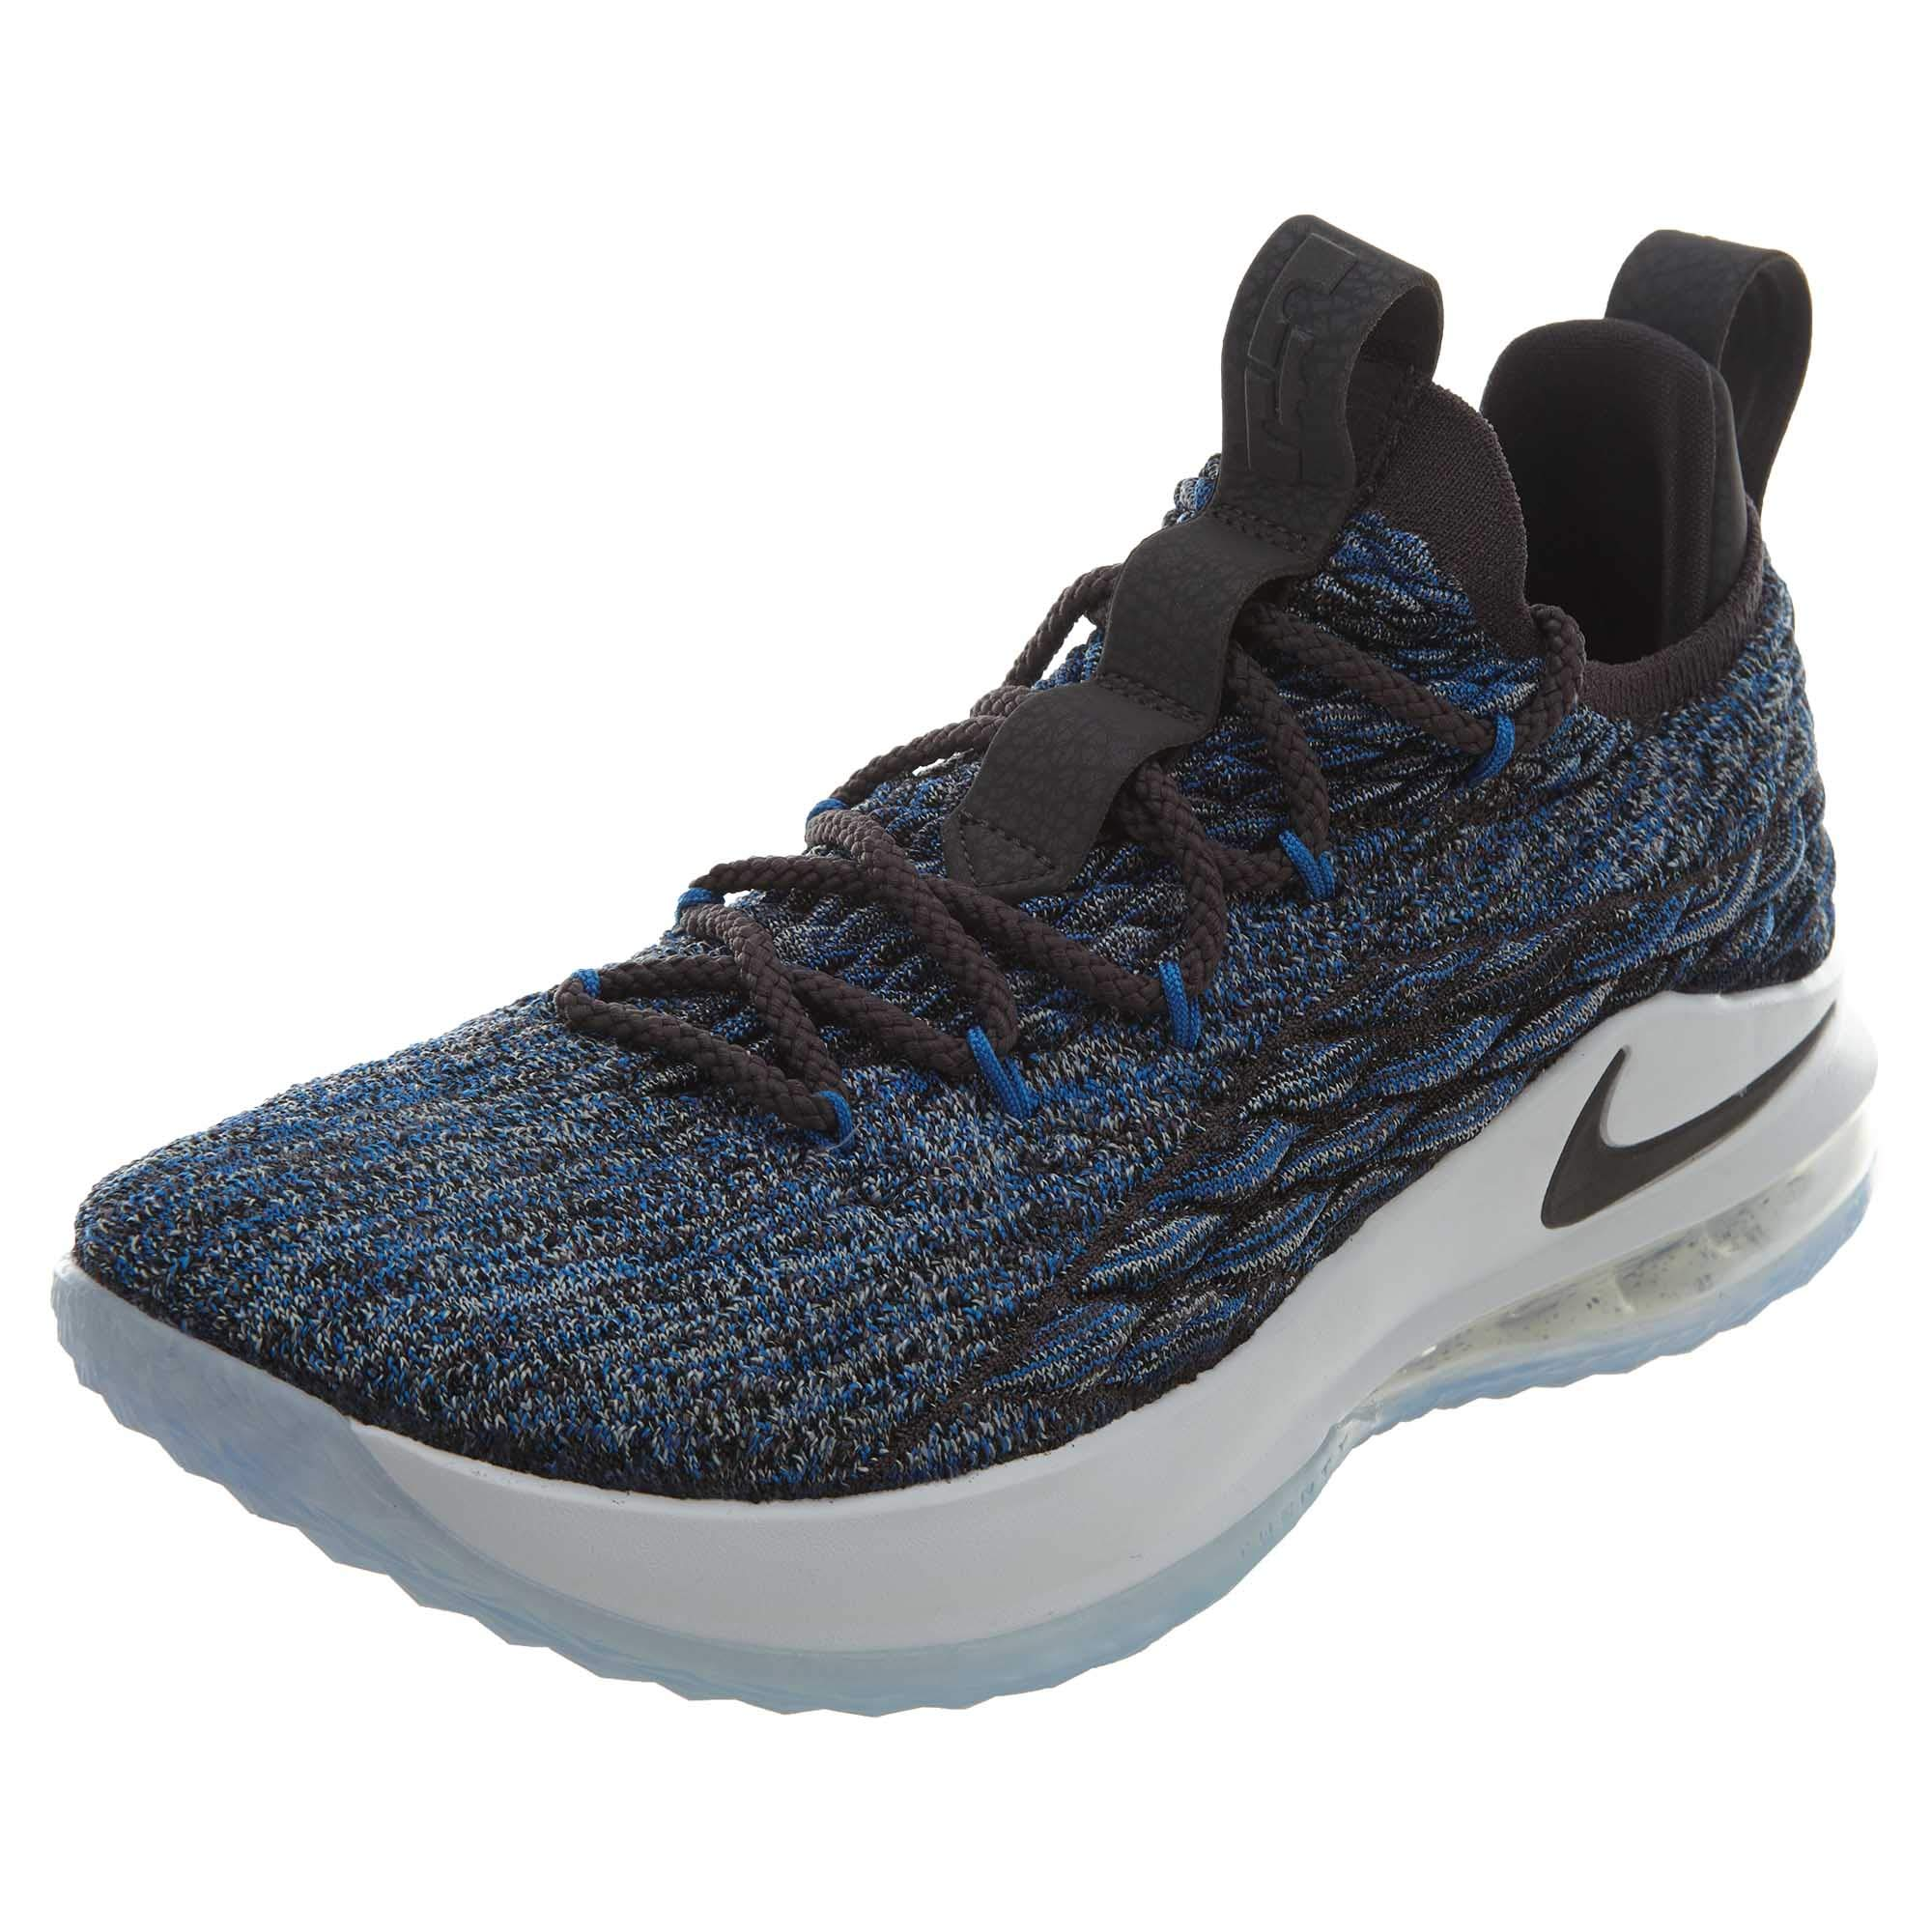 new product 00cfc 96a98 Galleon - NIKE Lebron XV Low Mens Fashion-Sneakers AO1755-400 8.5 - Signal  Blue Thunder Grey-Black